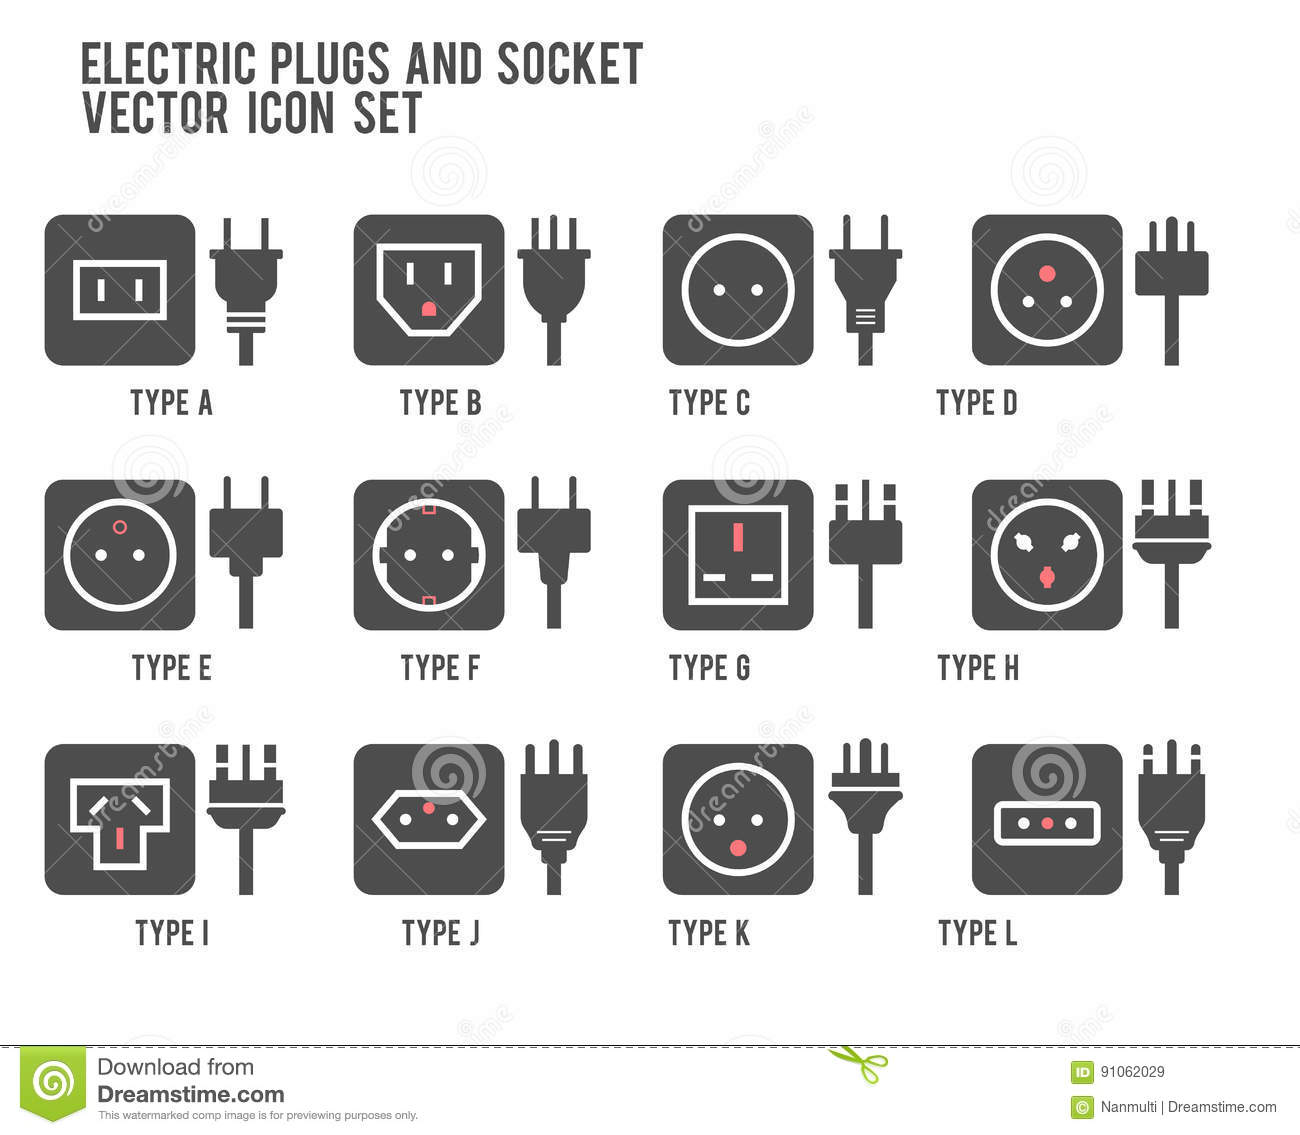 Stock Illustration Electric Outlet Illustration Different Type Power Socket Set Vector Isolated Icon Illustration Different Country Plugs Powe Image91062029 on types of audio plugs